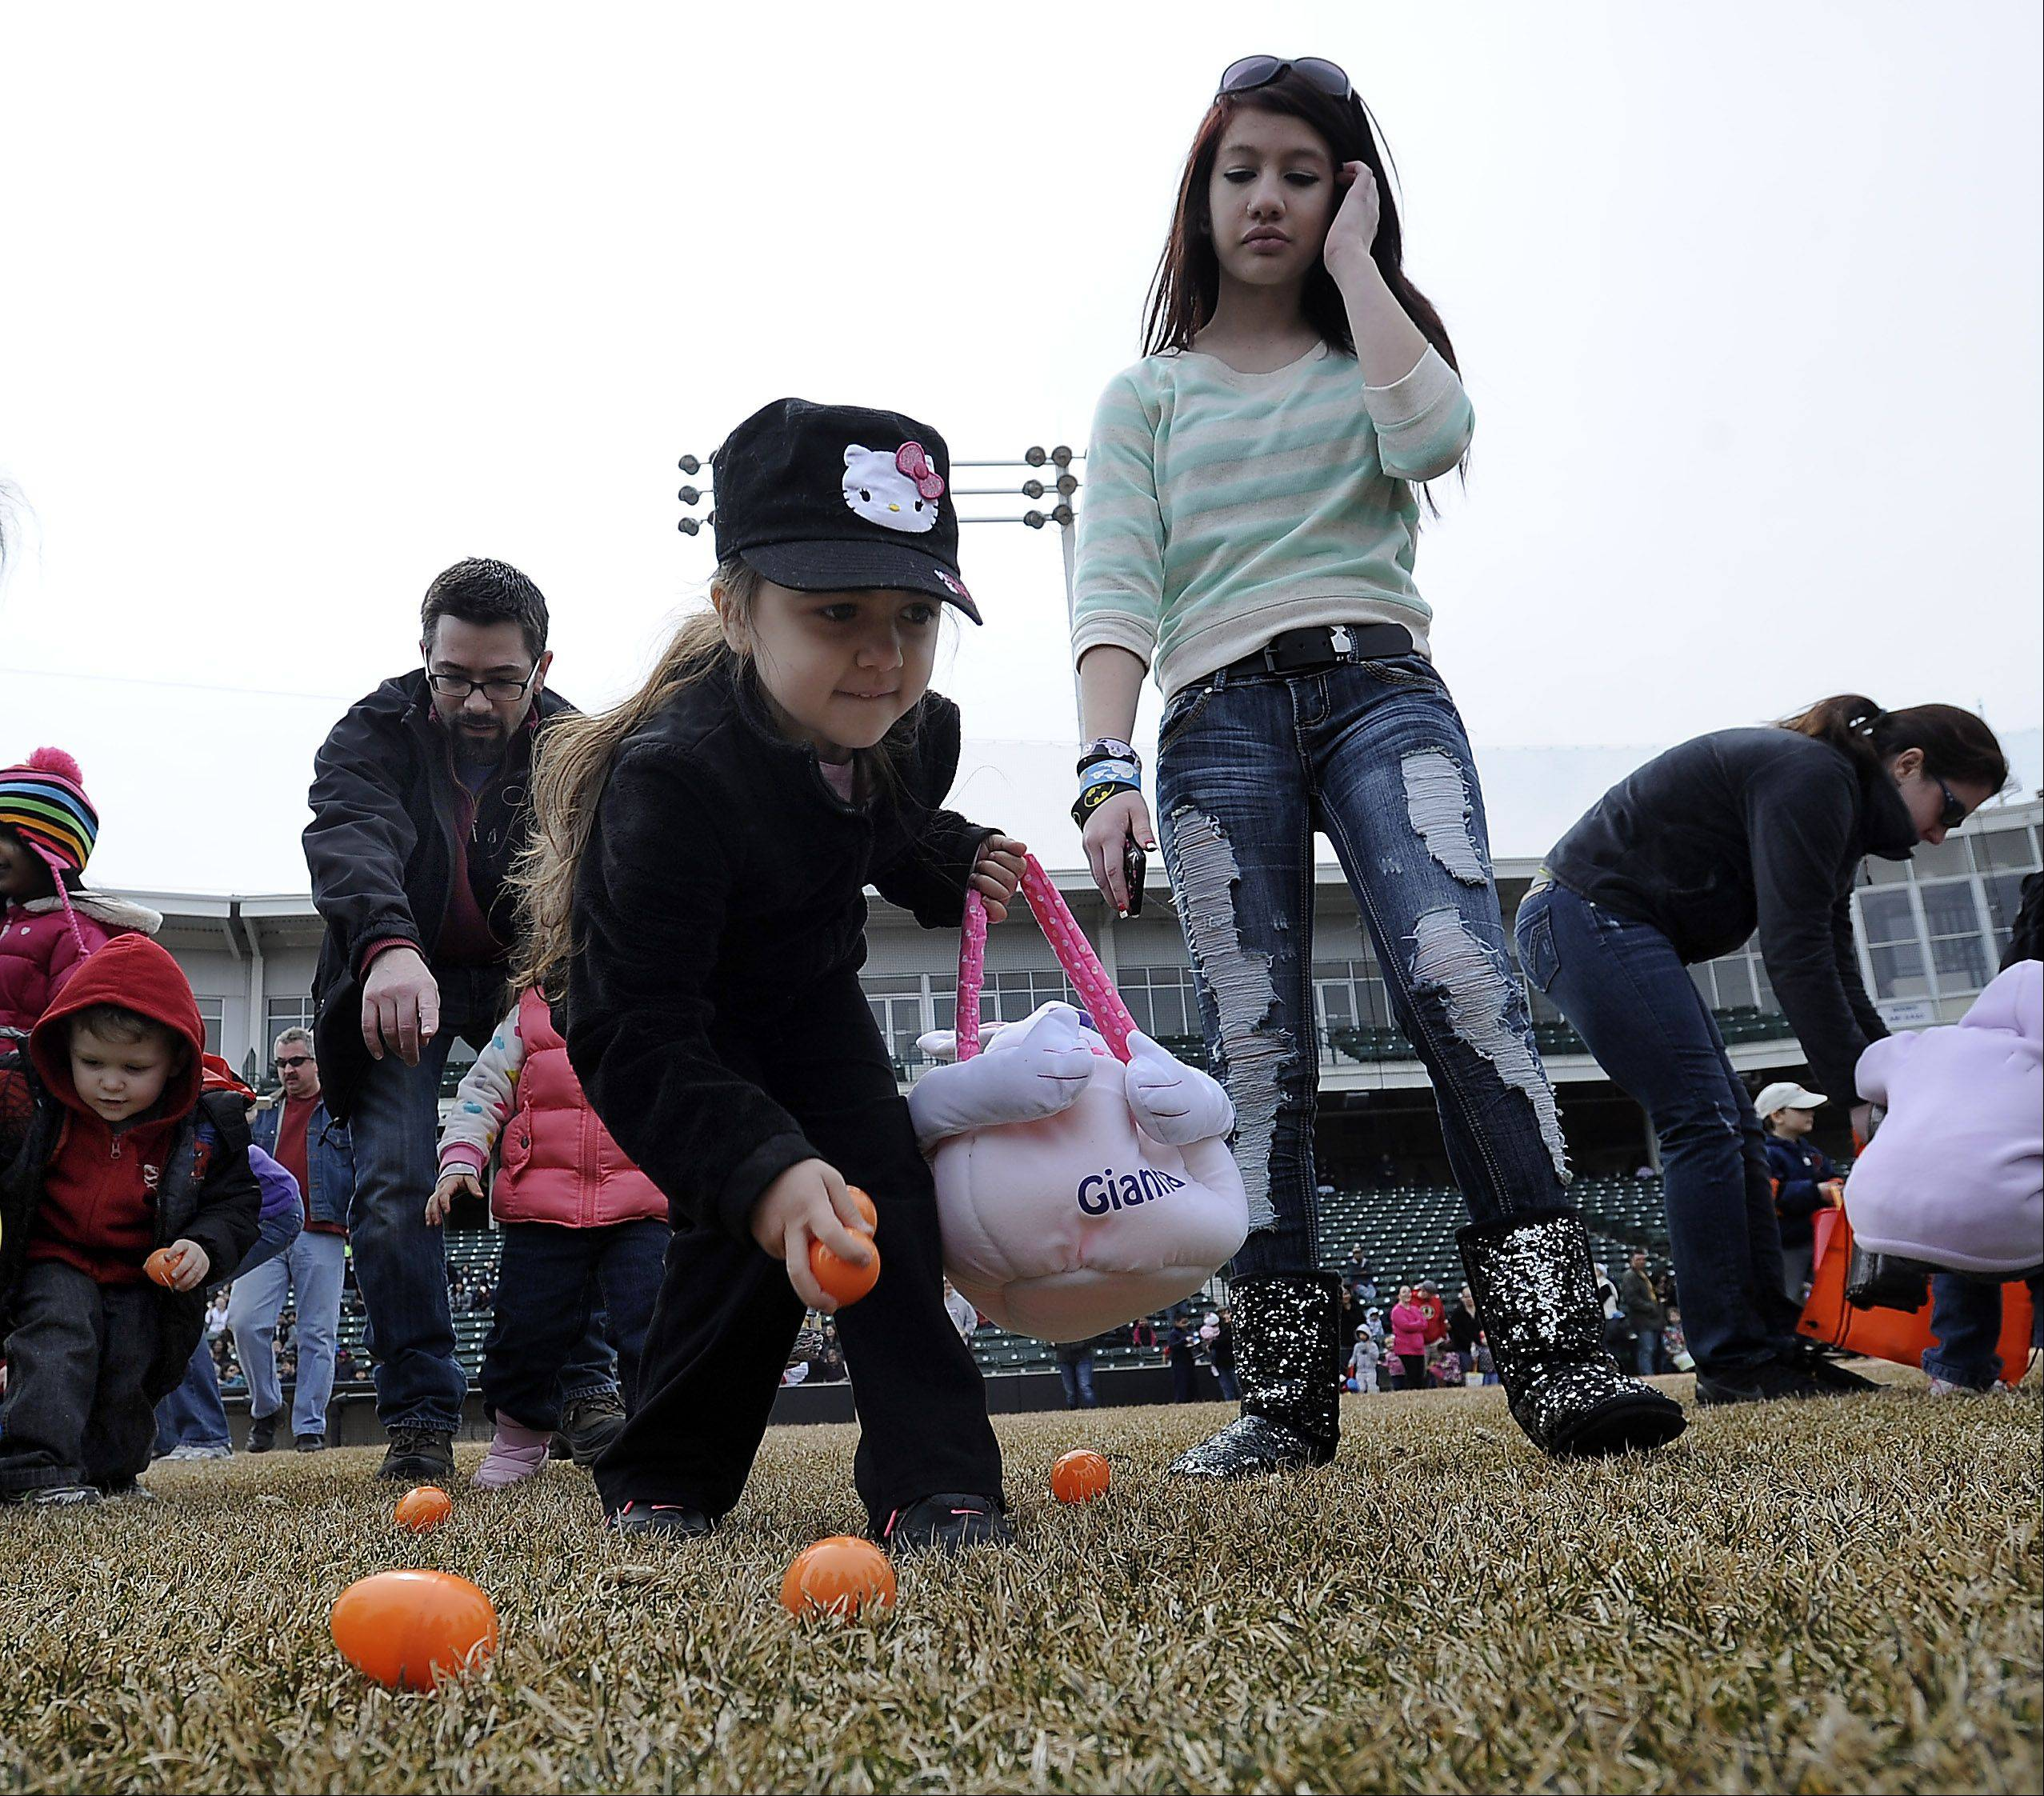 Gianna Balsamo, 4, of Schaumburg and her helper Kaitin Agron, 15, scoop up as many Easter eggs as possible in the mad rush at the Schaumburg Boomers 2nd annual Easter egg hunt on Saturday.